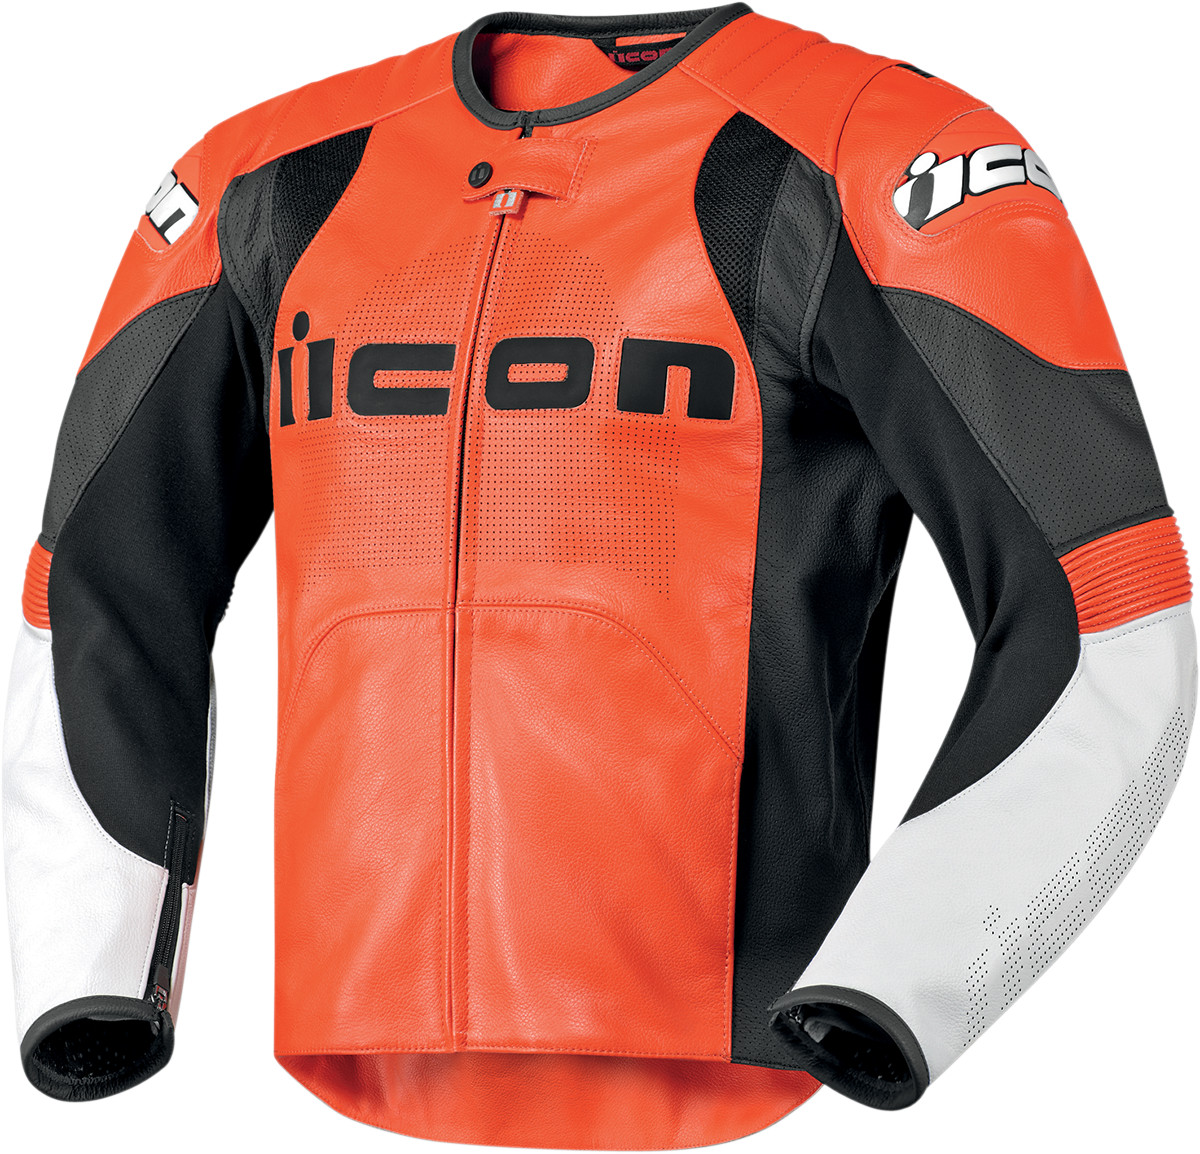 Find Orange Motorcycle Vest at J&P Cycles, your source for aftermarket motorcycle parts and accessories.